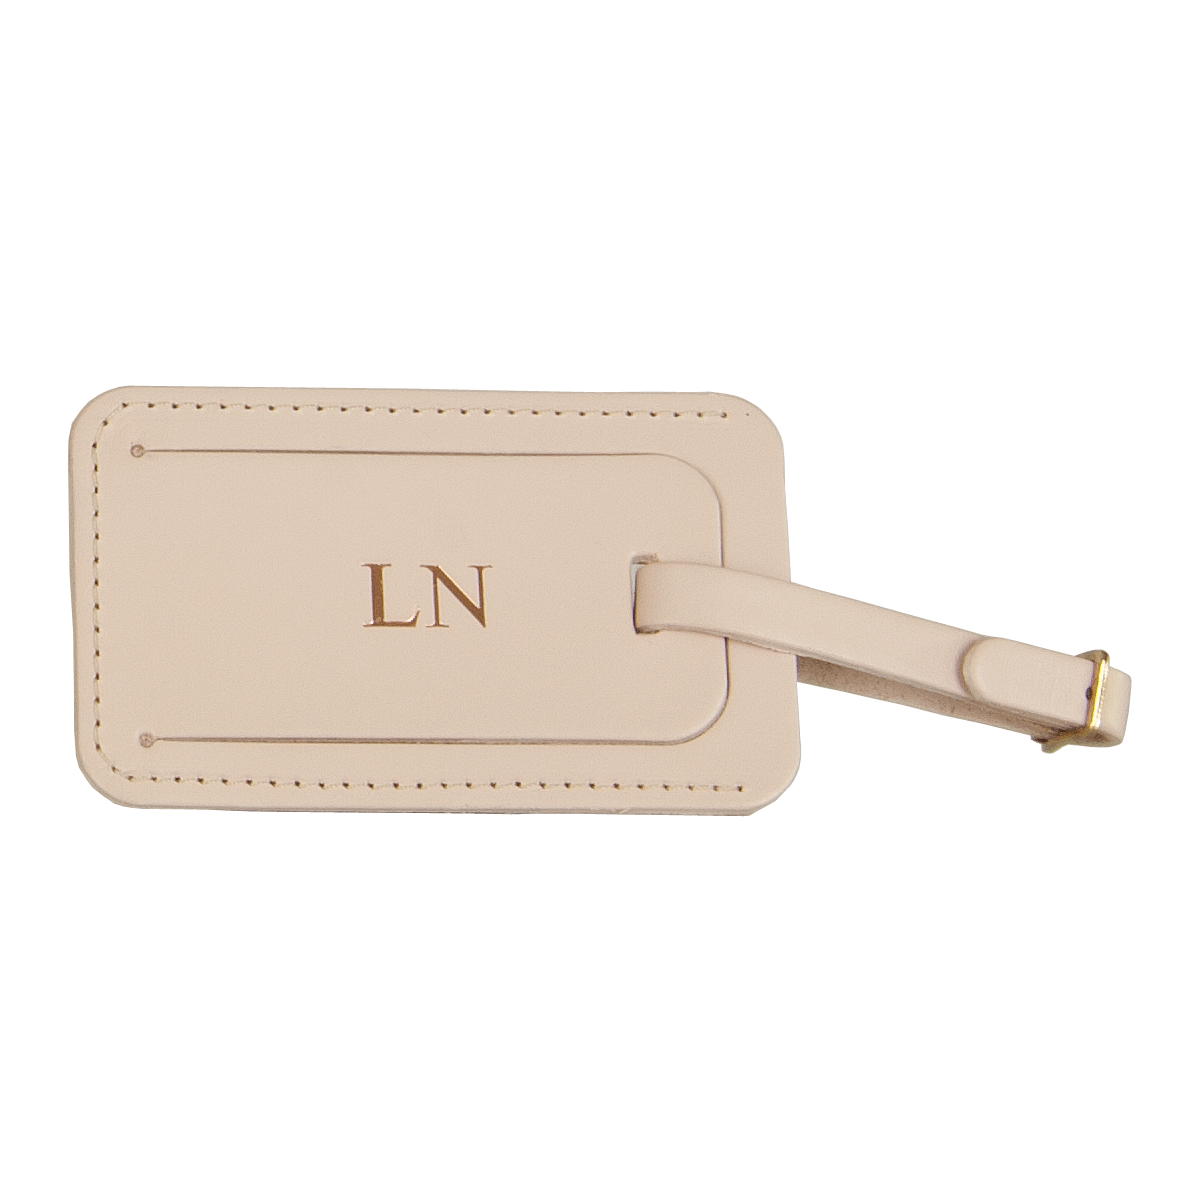 Leather Luggage Tag Champagne, part of the Luxury Leather Travel Set